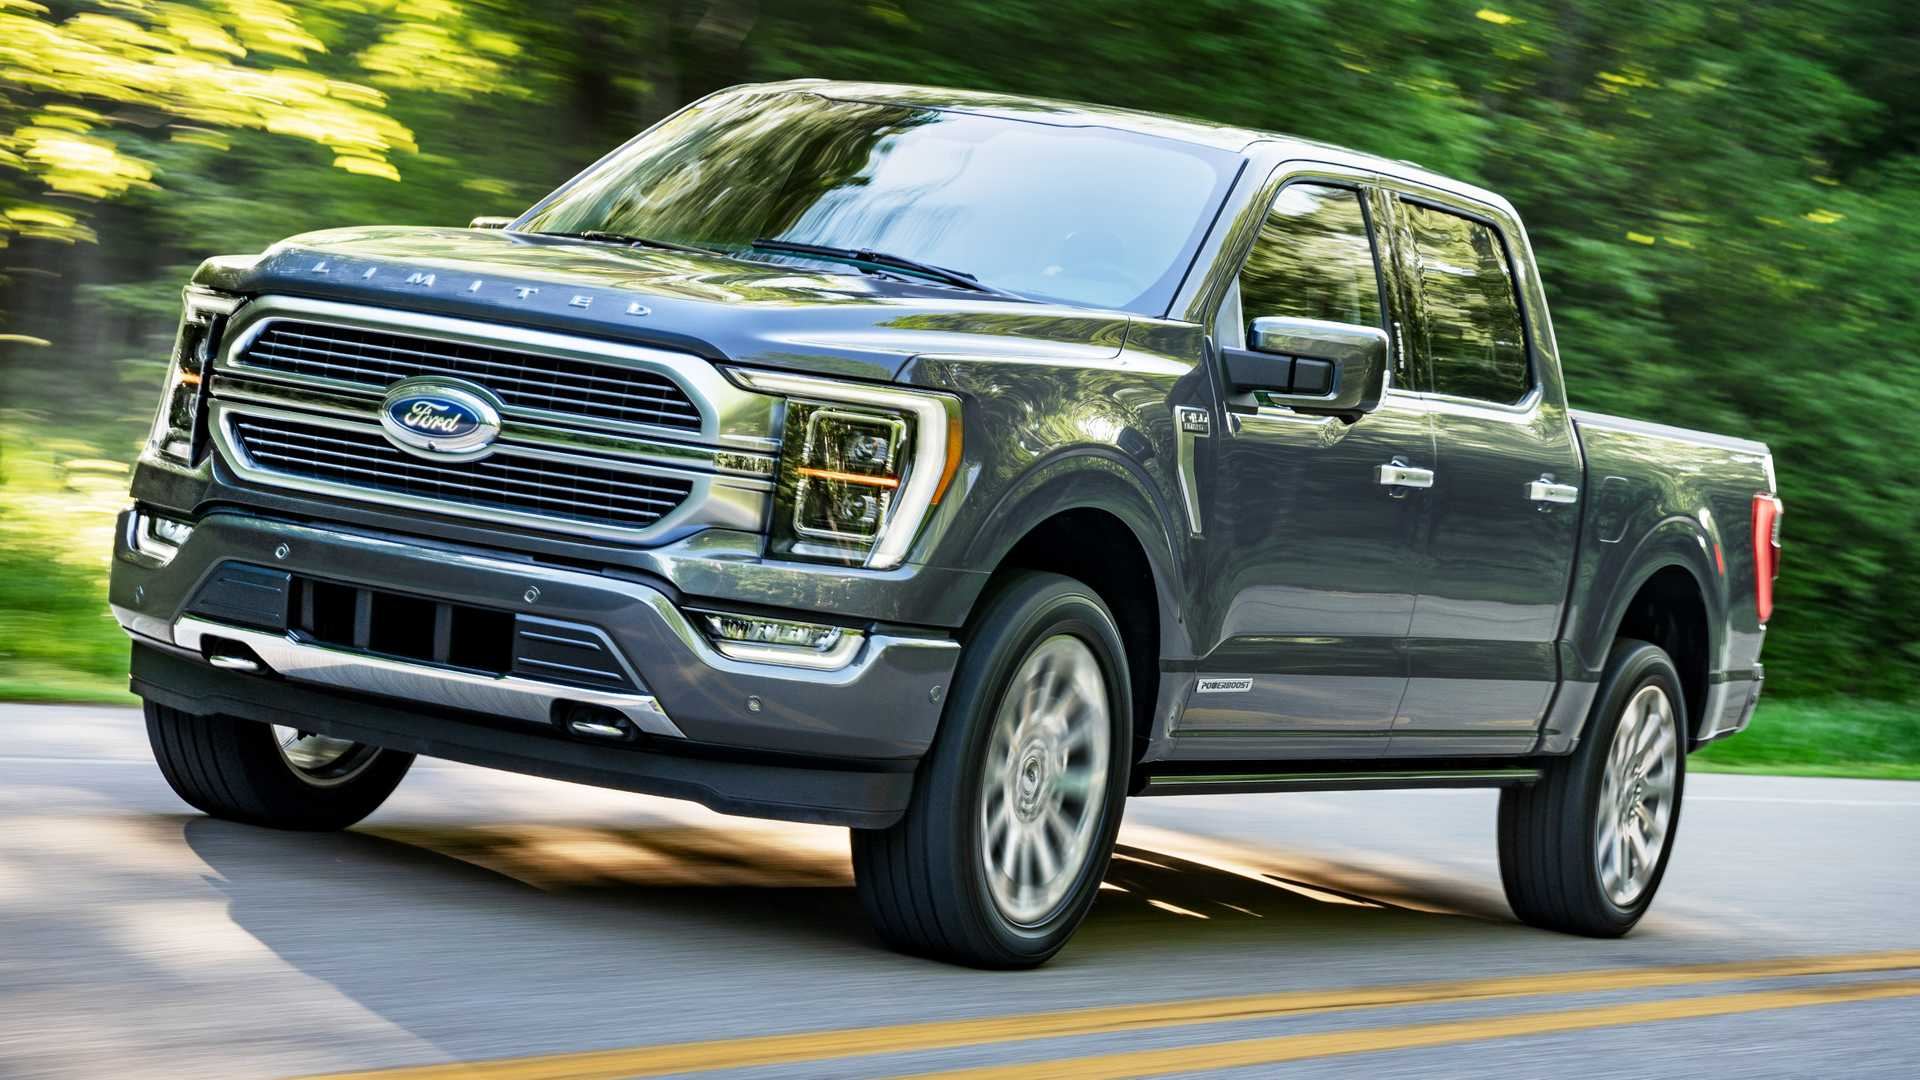 Fully Loaded 2021 Ford F 150 Will Cost More Than 80000 1920x1080